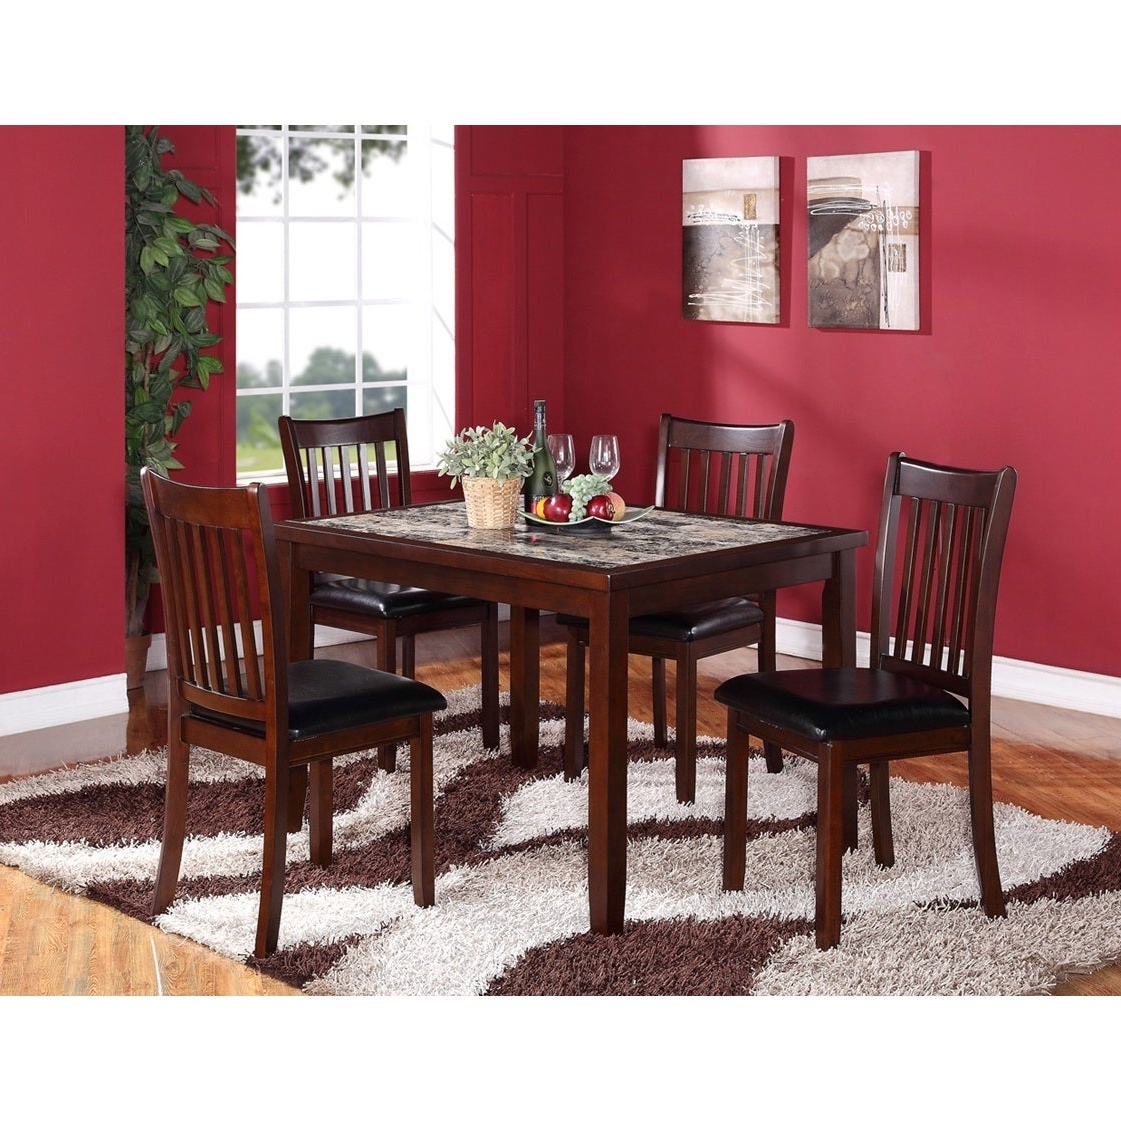 Most Popular Aria 5 Piece Dining Sets Pertaining To Shop 5 Piece Wooden Dining Set In Dark Brown With Artificial Marble (View 12 of 25)